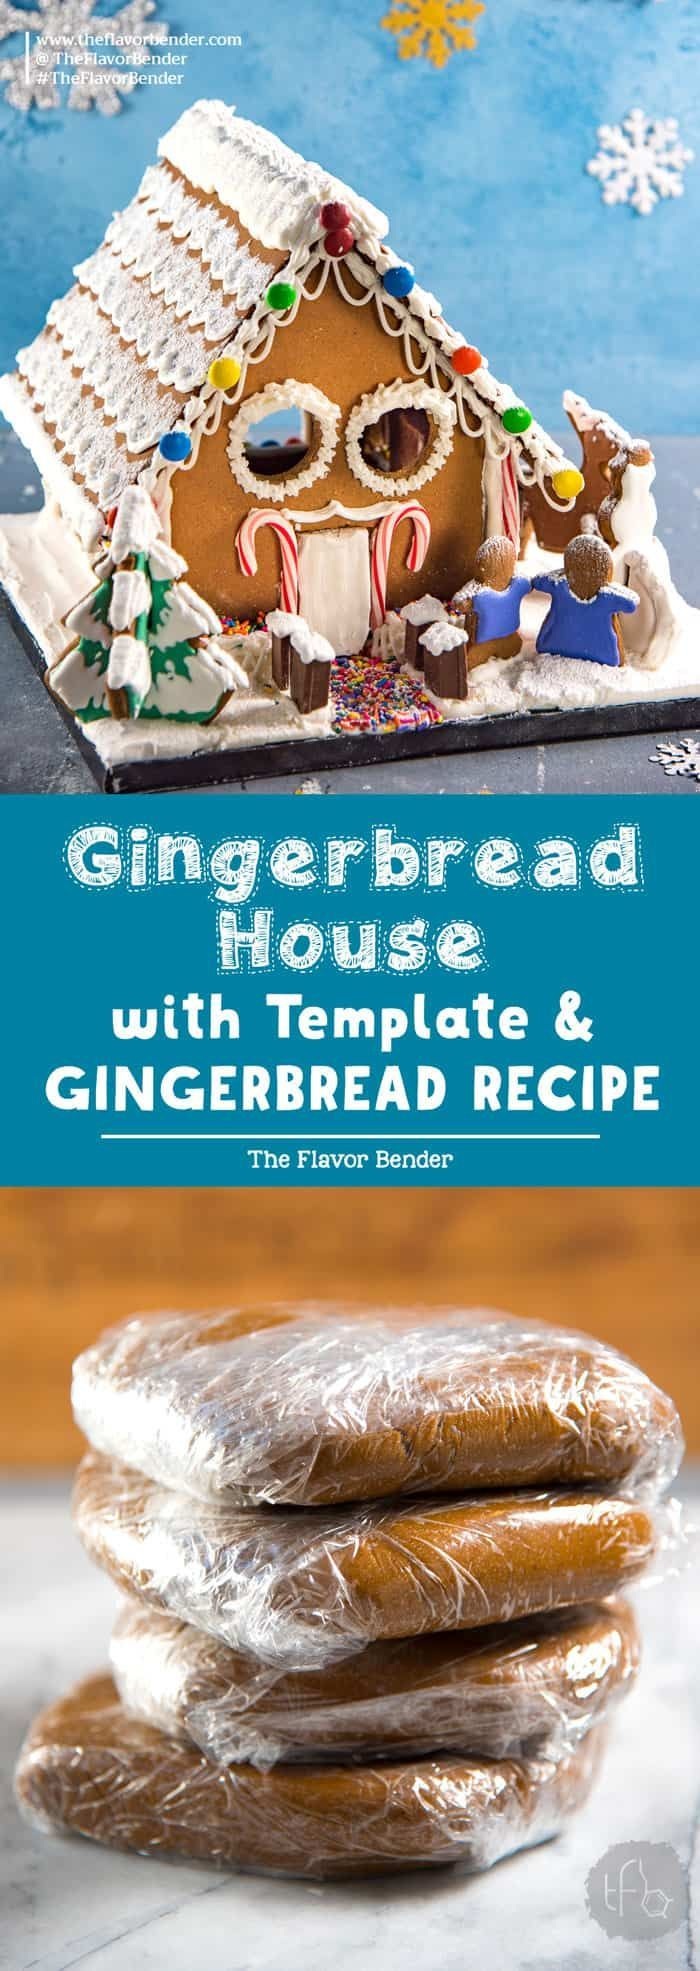 Gingerbread House (Recipe & Template) - The Flavor Bender #gingerbreadhousetemplate